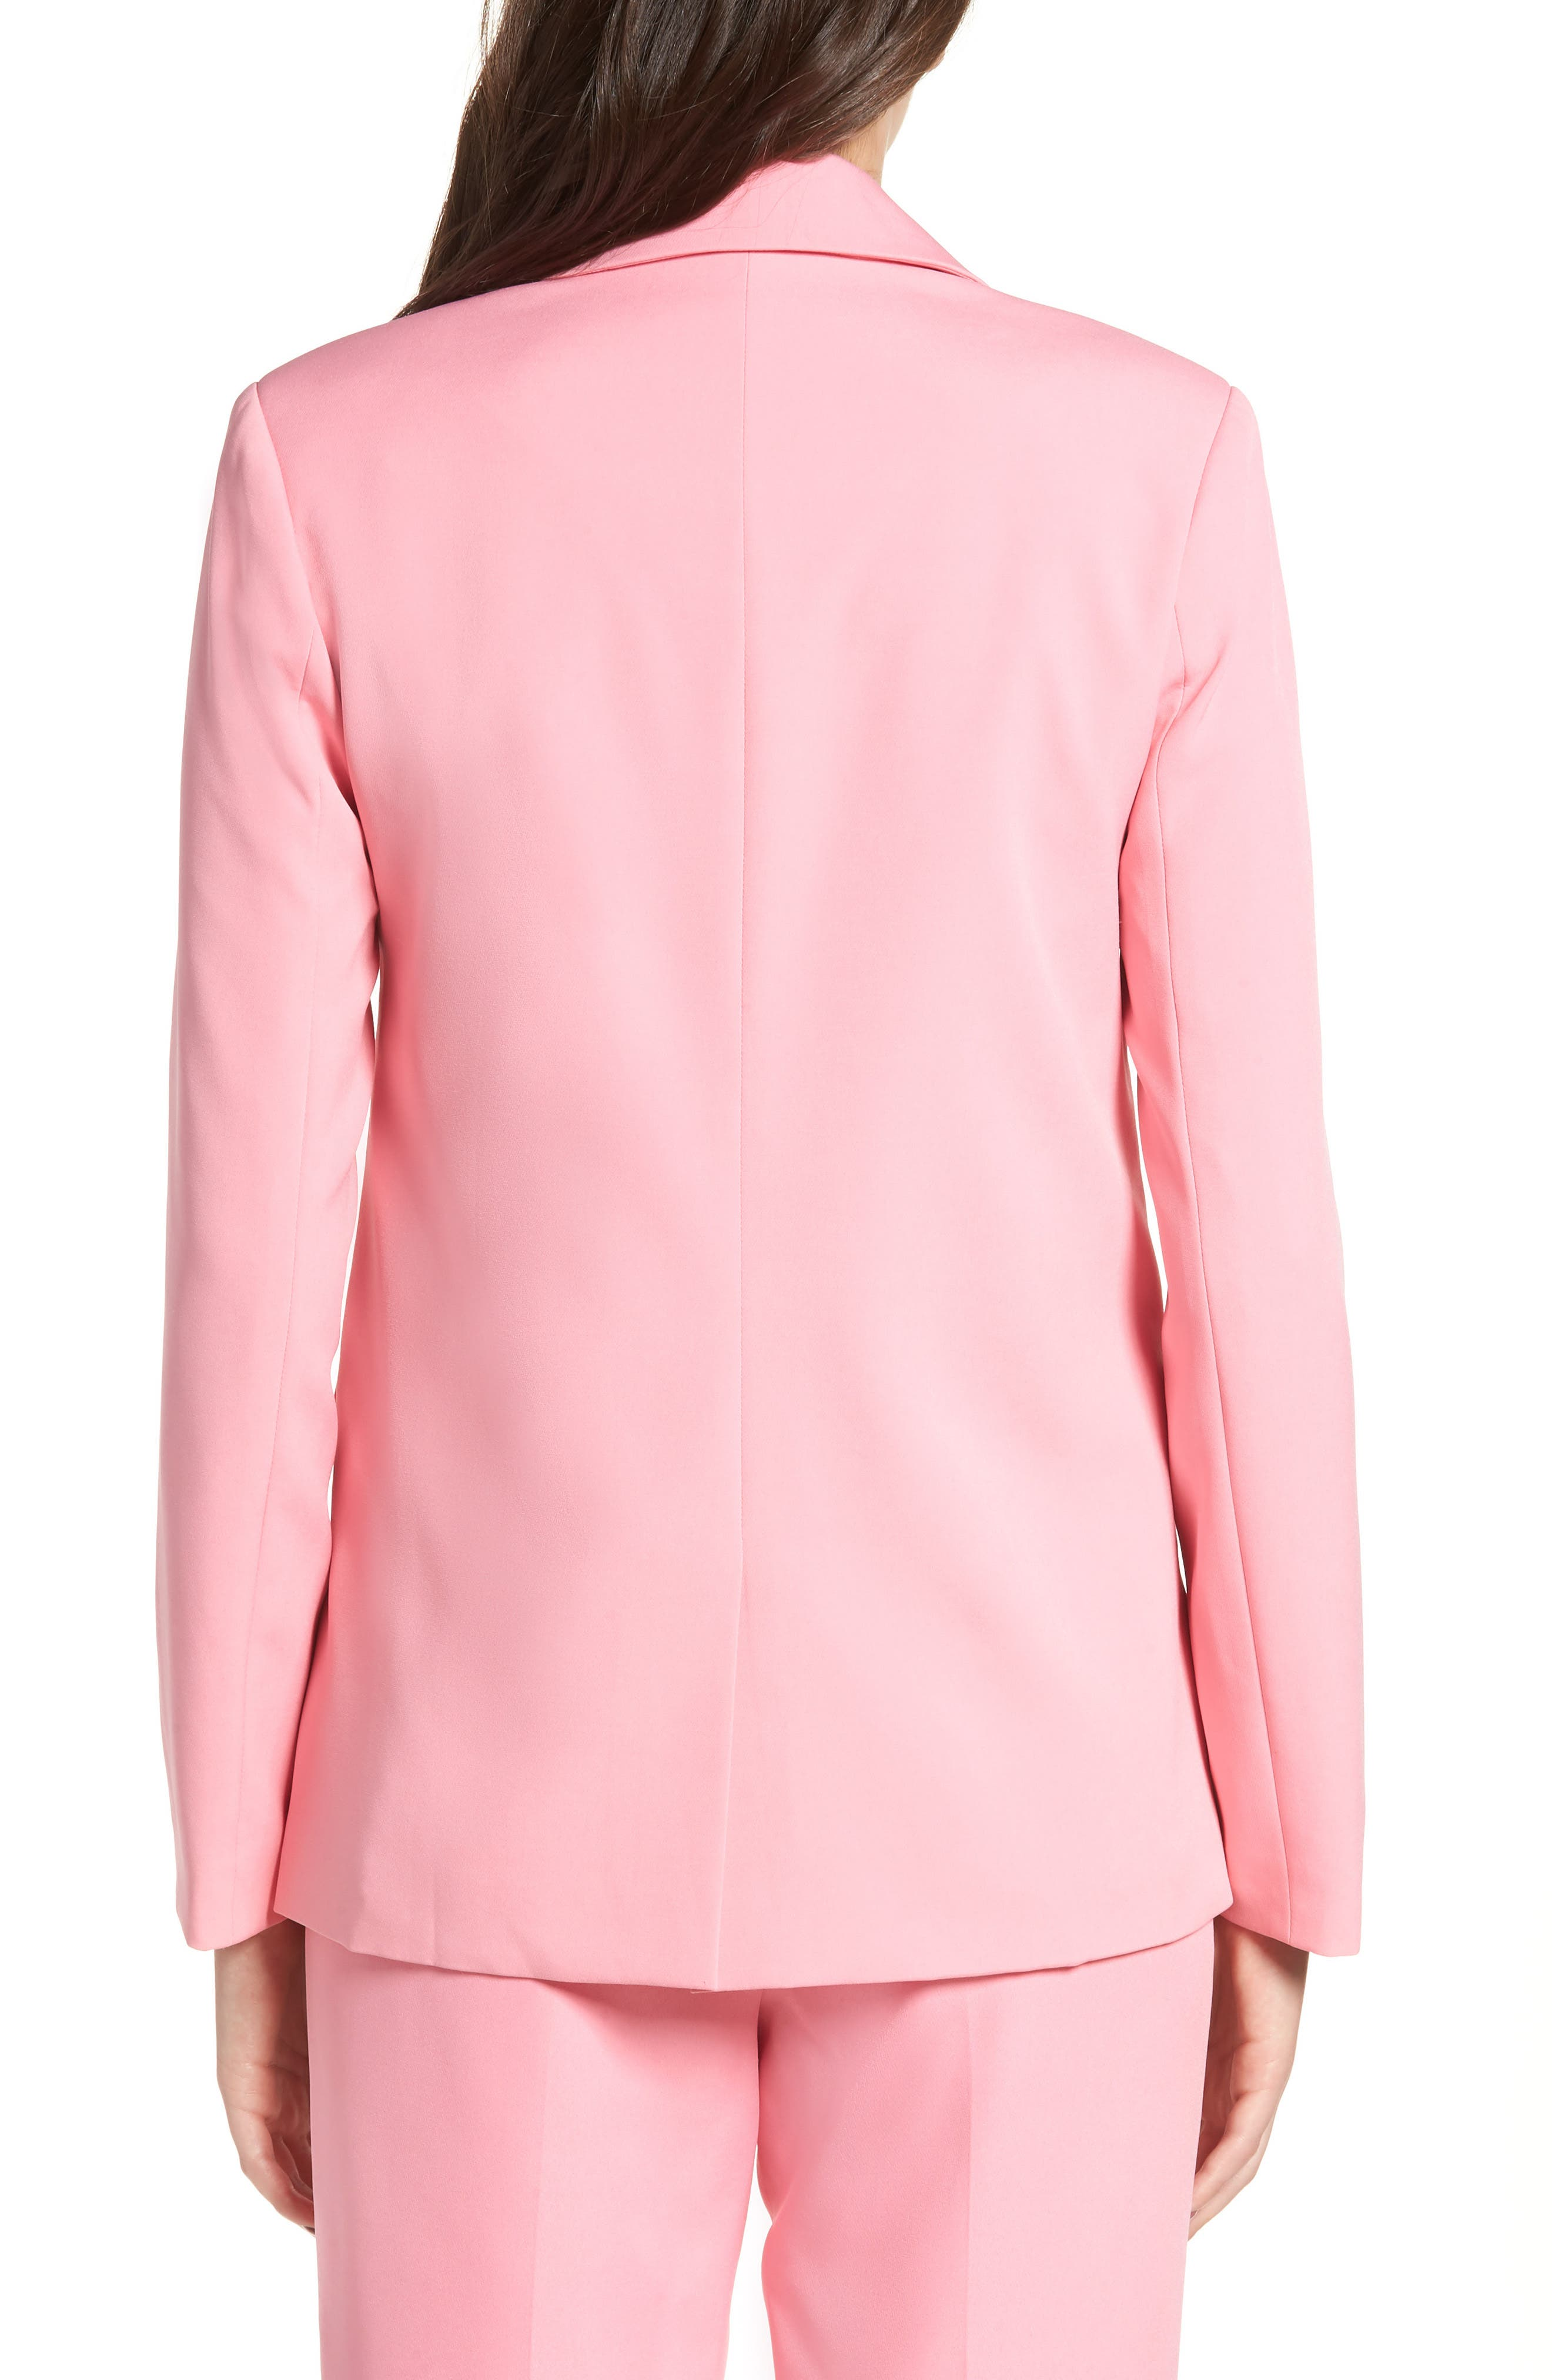 Peaked Lapel Jacket,                             Alternate thumbnail 2, color,                             CANDY PINK